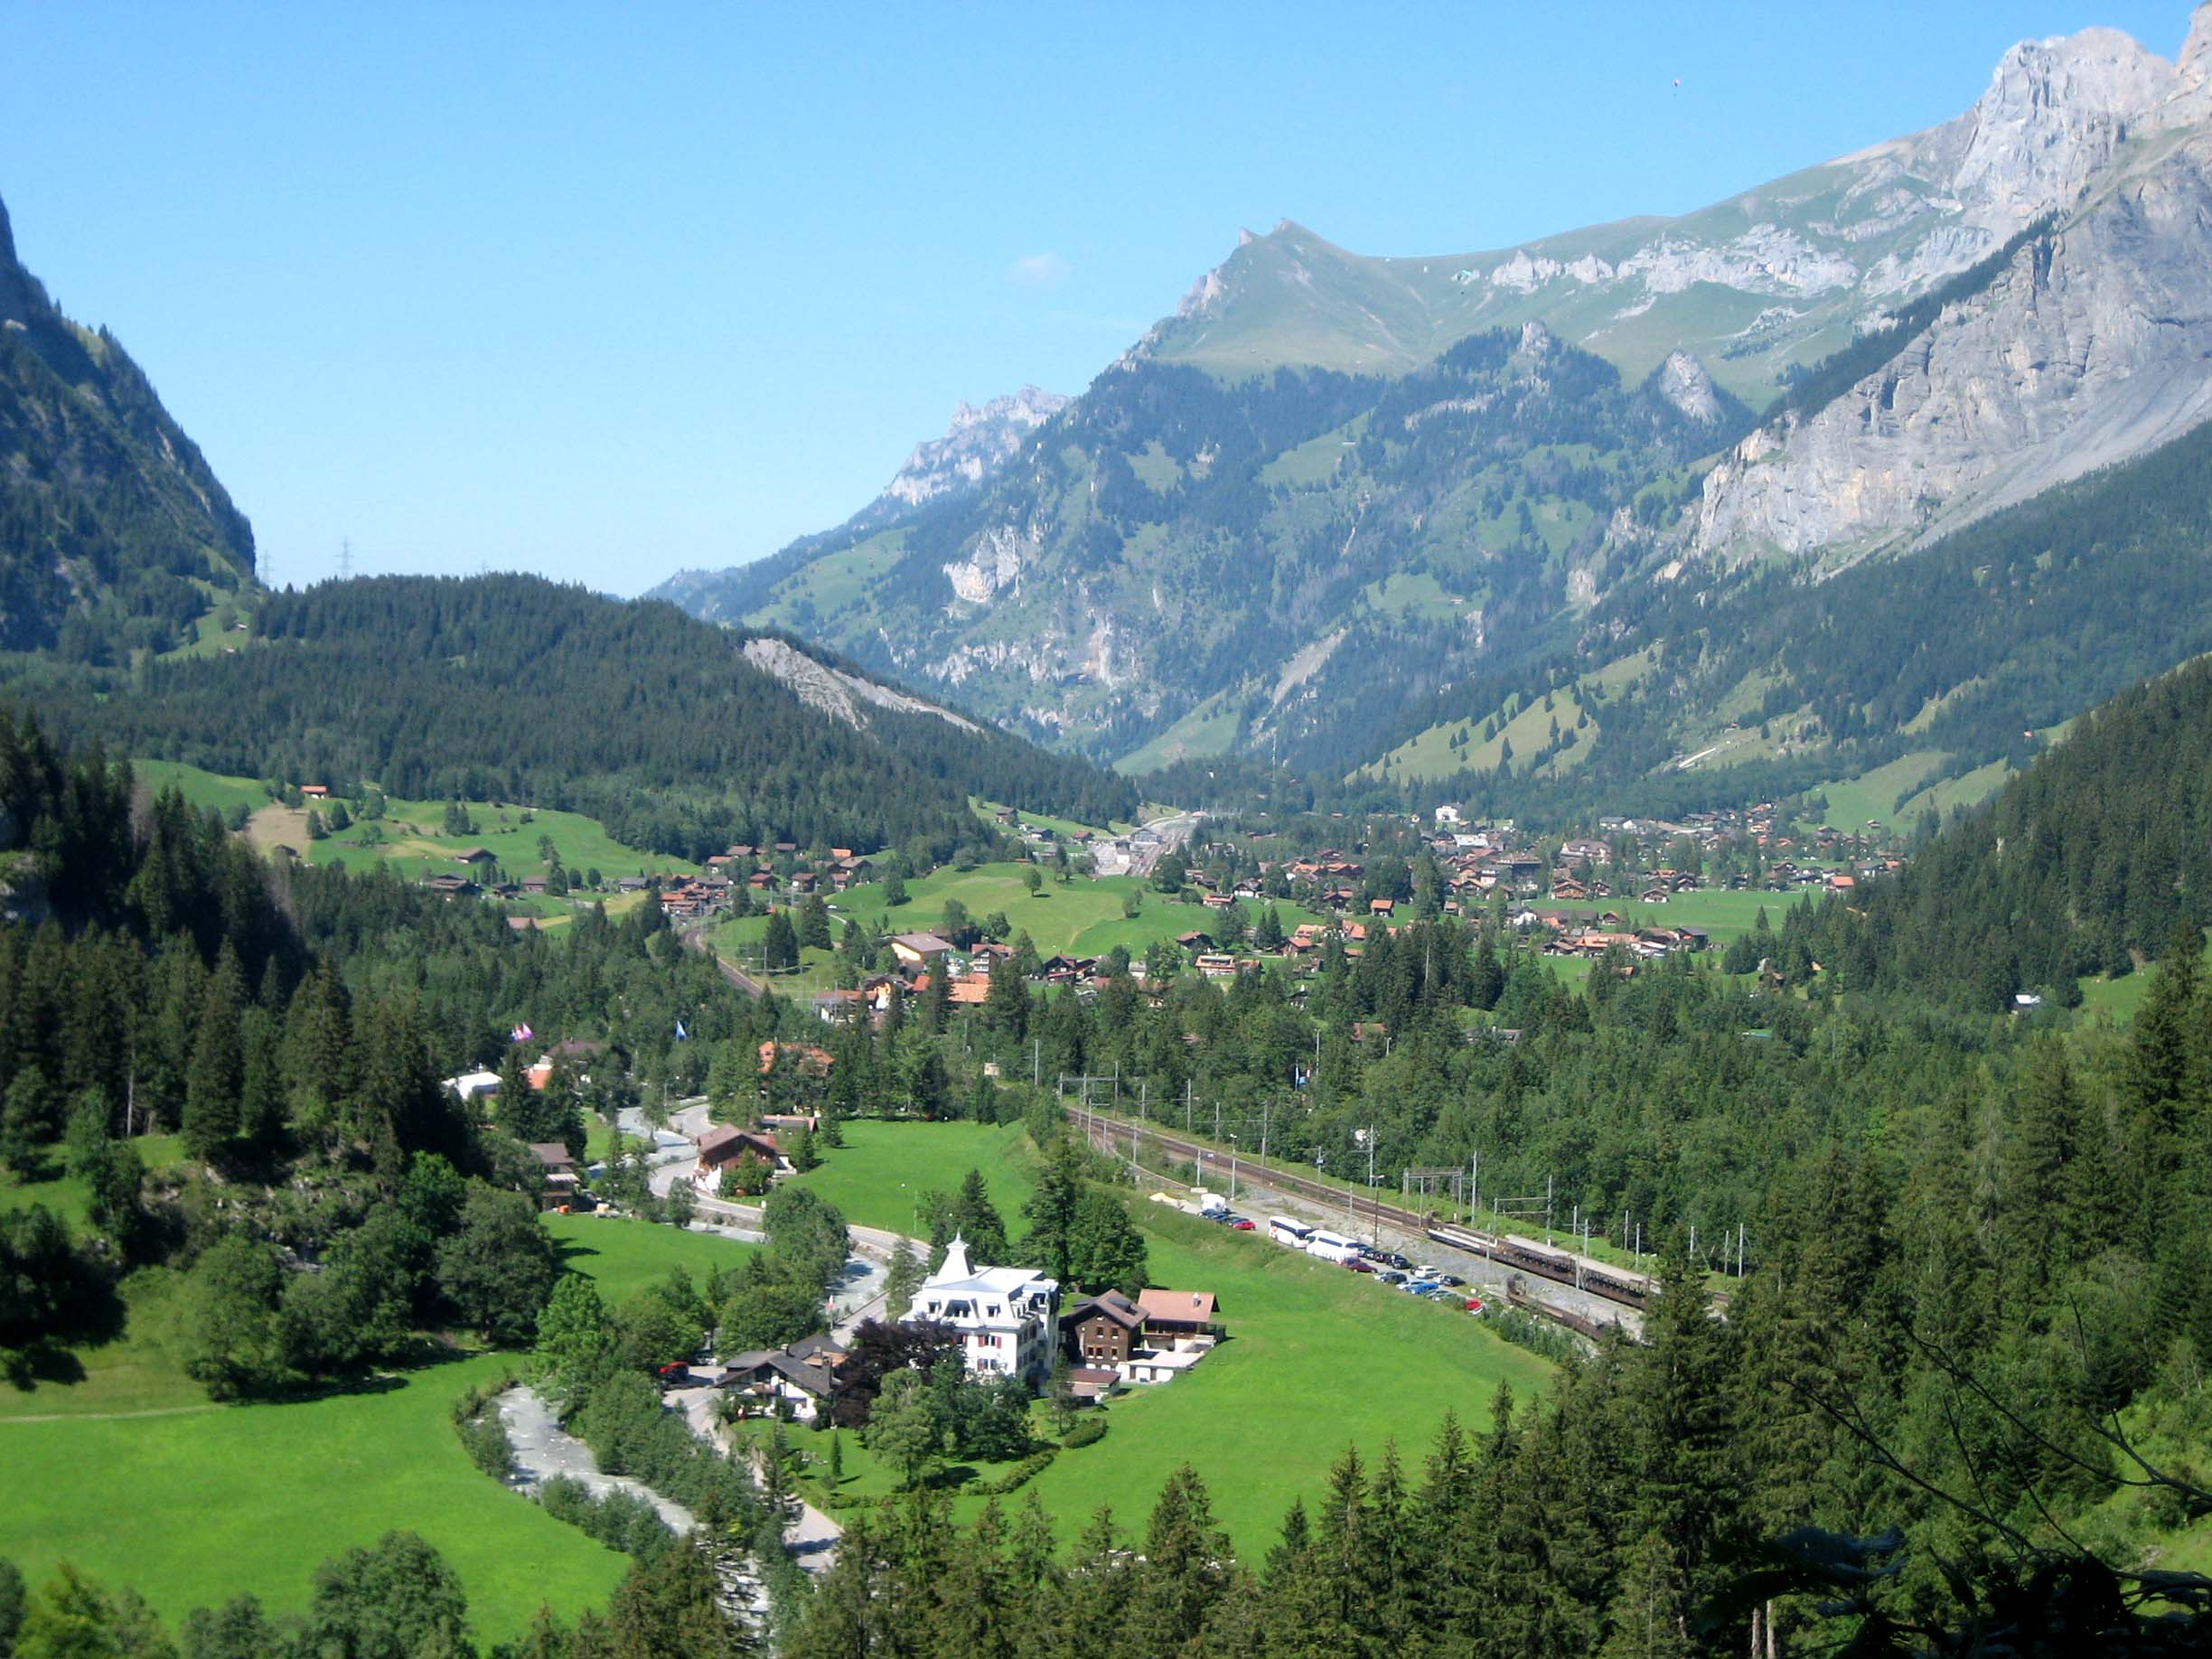 Kandersteg Switzerland  city photos gallery : Description Kandersteg Ansicht